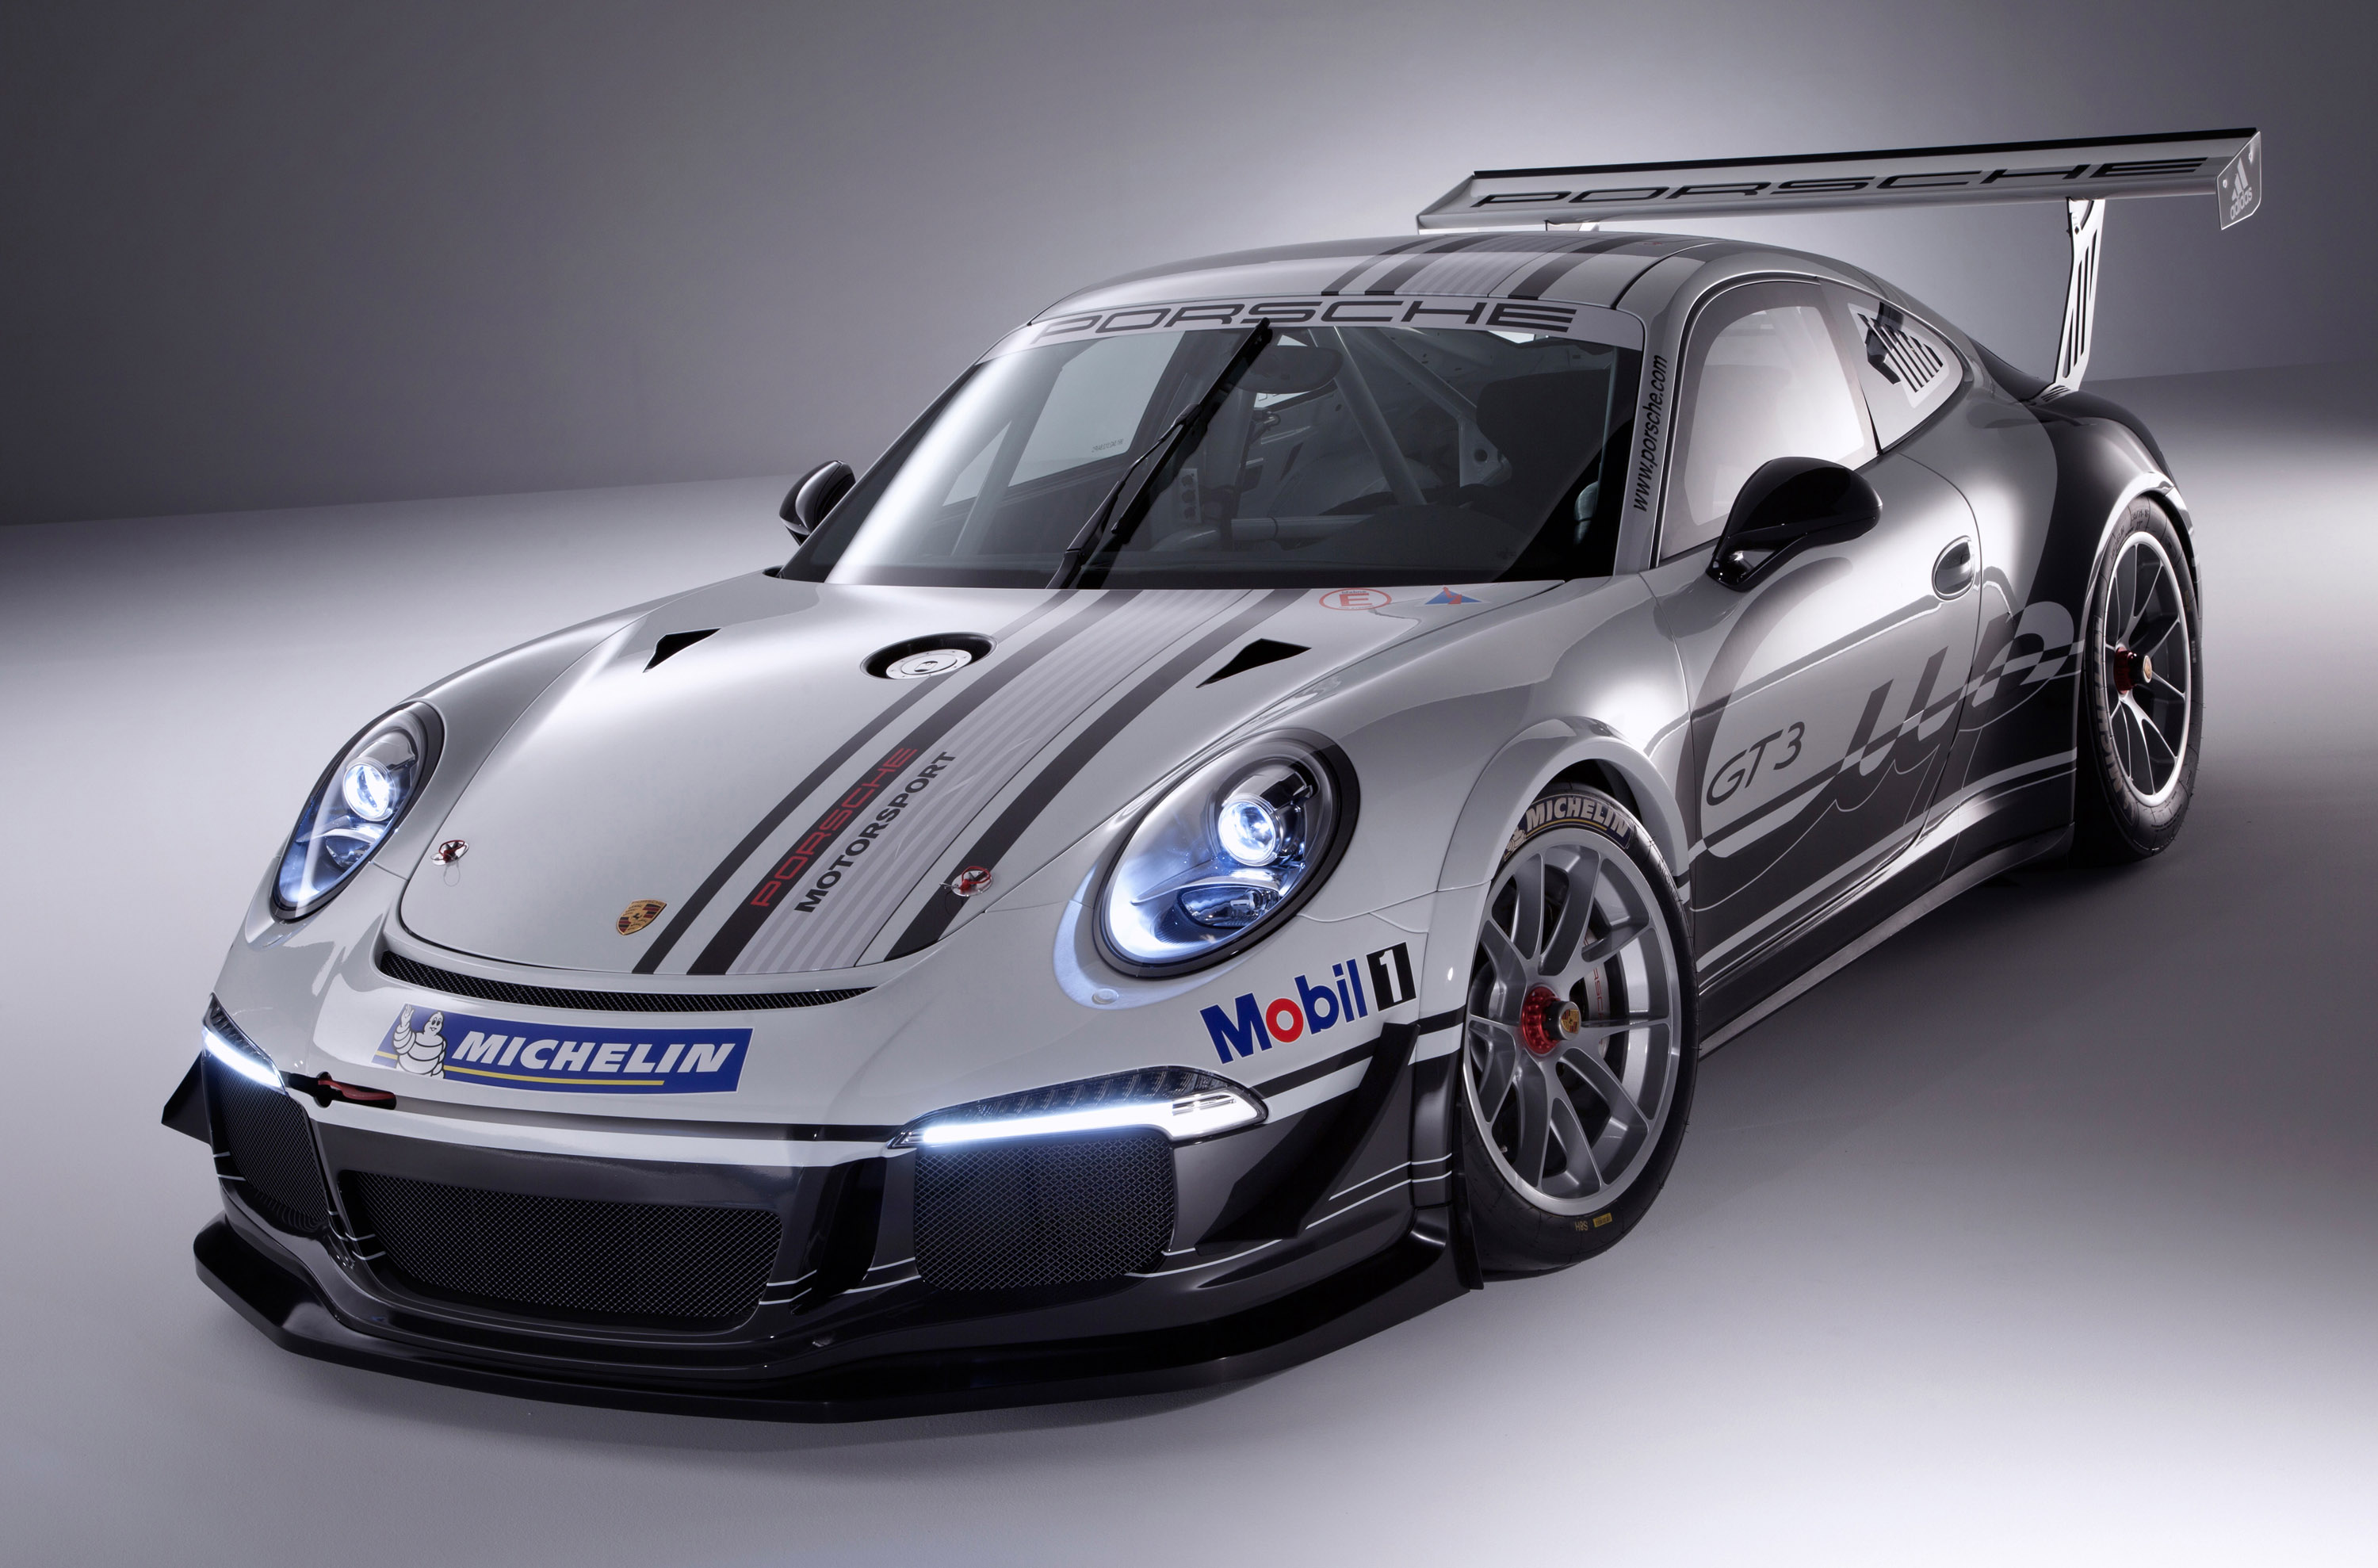 New Porsche 911 GT3 Cup Car